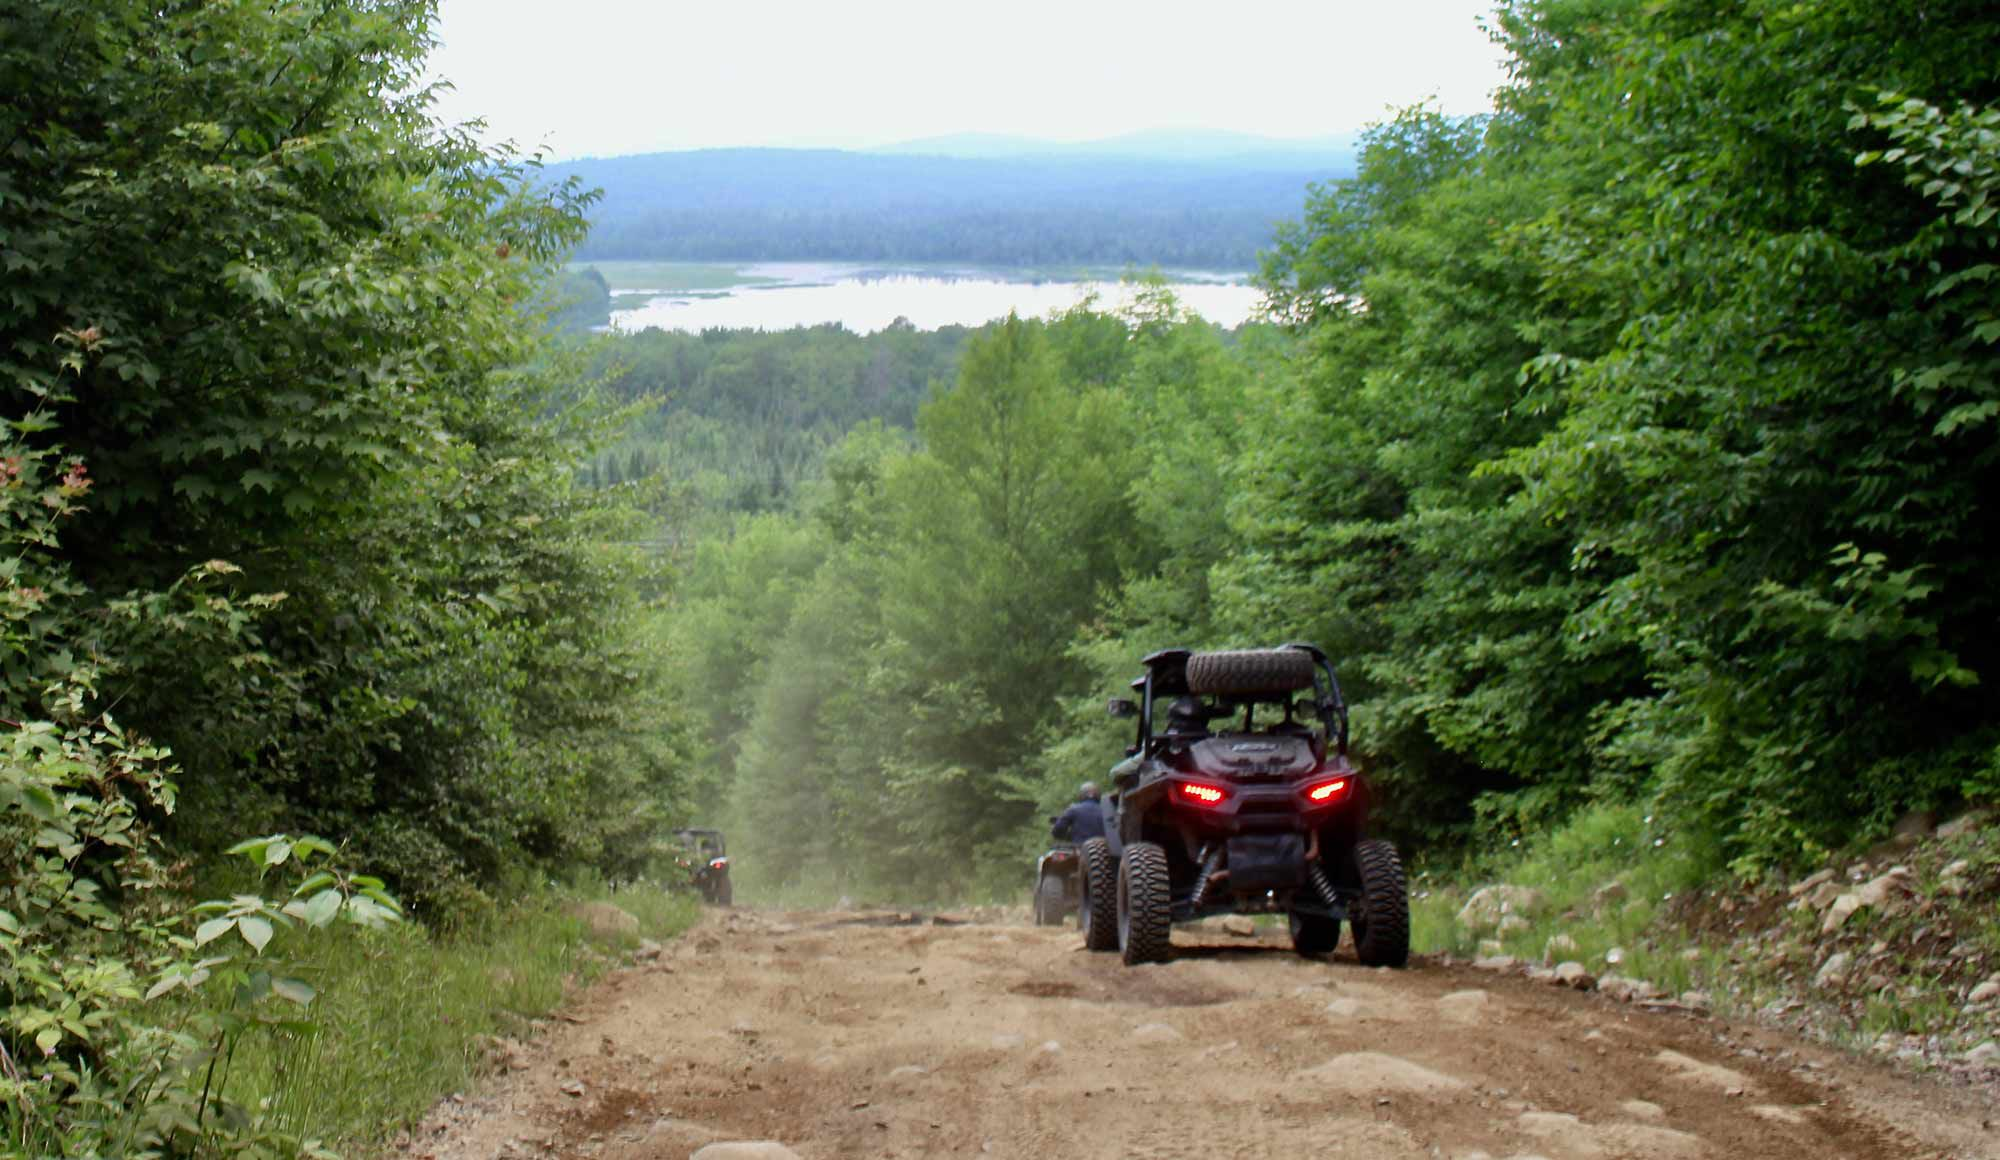 ATV and UTV heaven. More miles of trails than you can imagine and gorgeous scenery to go with it.